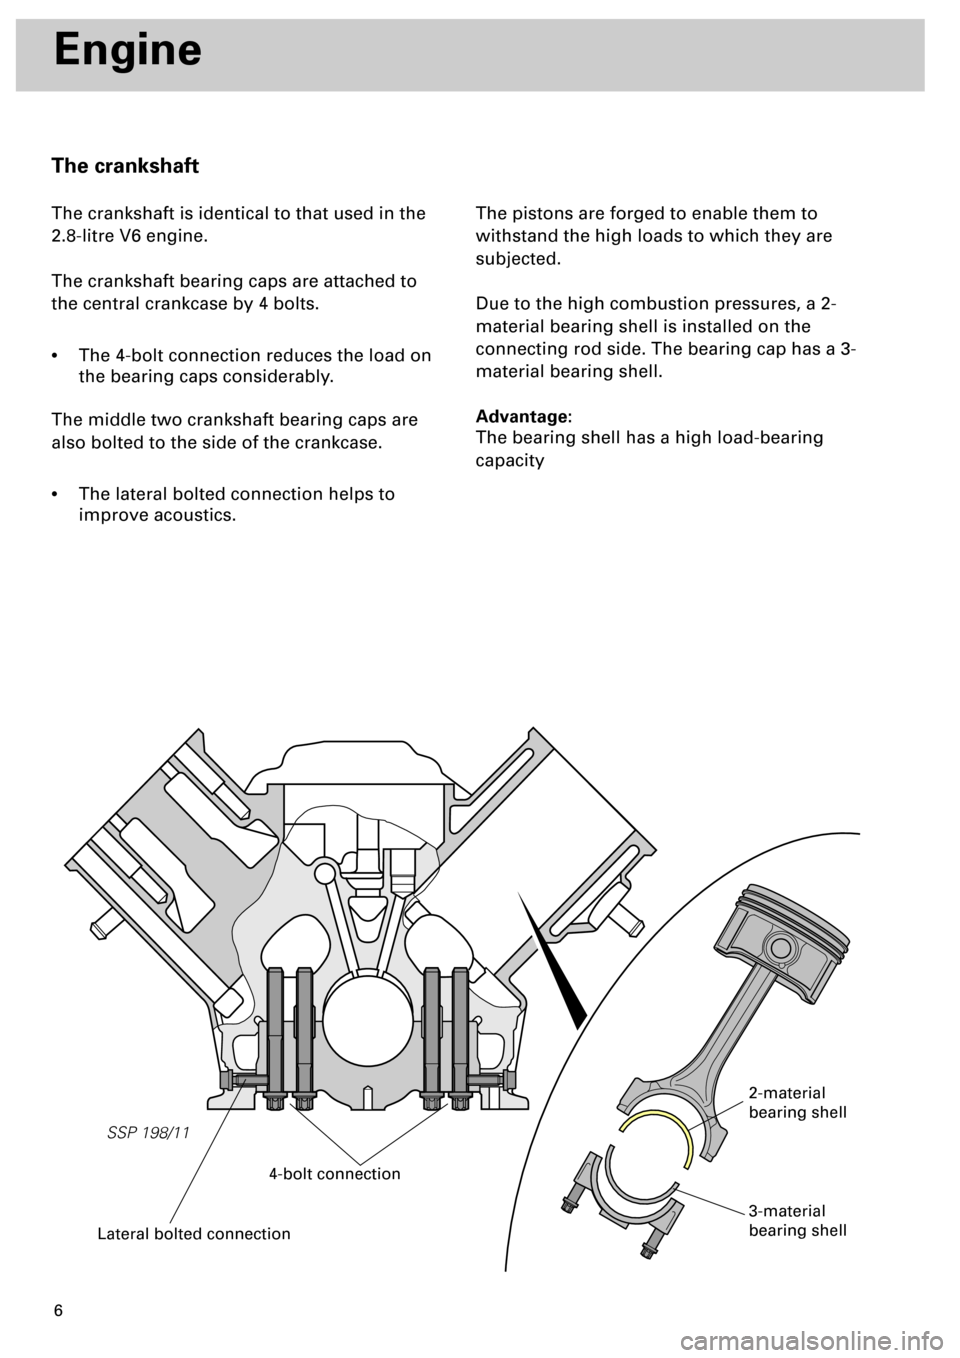 AUDI S4 1998 B5 / 1.G Engine Manual, Page 6